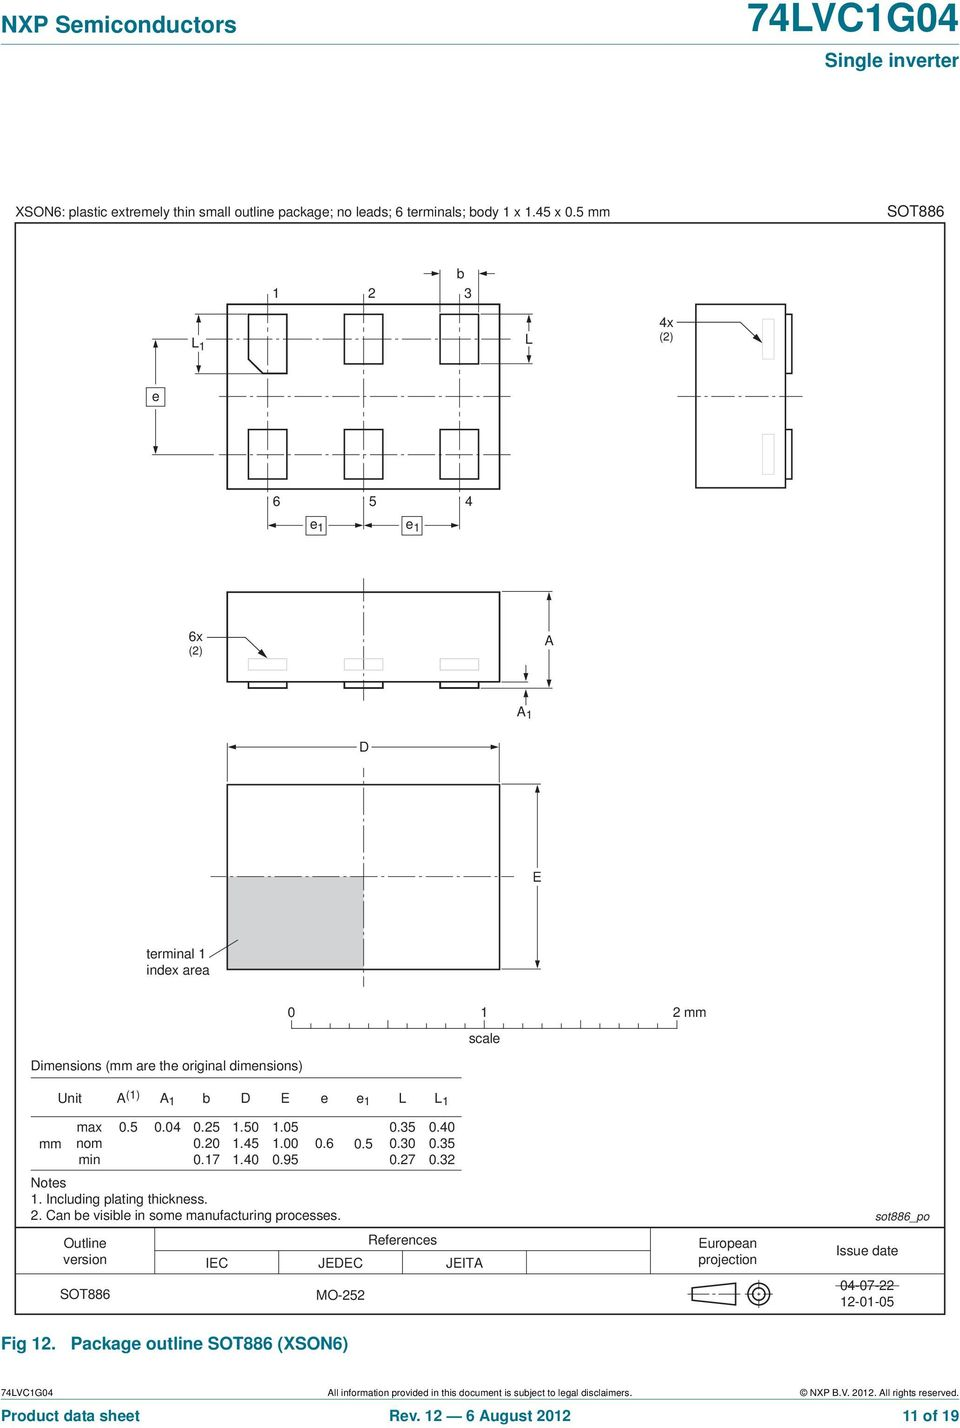 Outline version SOT886 0.5 0.04 0.25 1.50 0.20 1.45 0.17 1.40 1.05 1.00 0.95 0.6 Notes 1. Including plating thickness. 2. Can be visible in some manufacturing processes. 0.5 References IEC JEDEC JEIT MO-252 0.